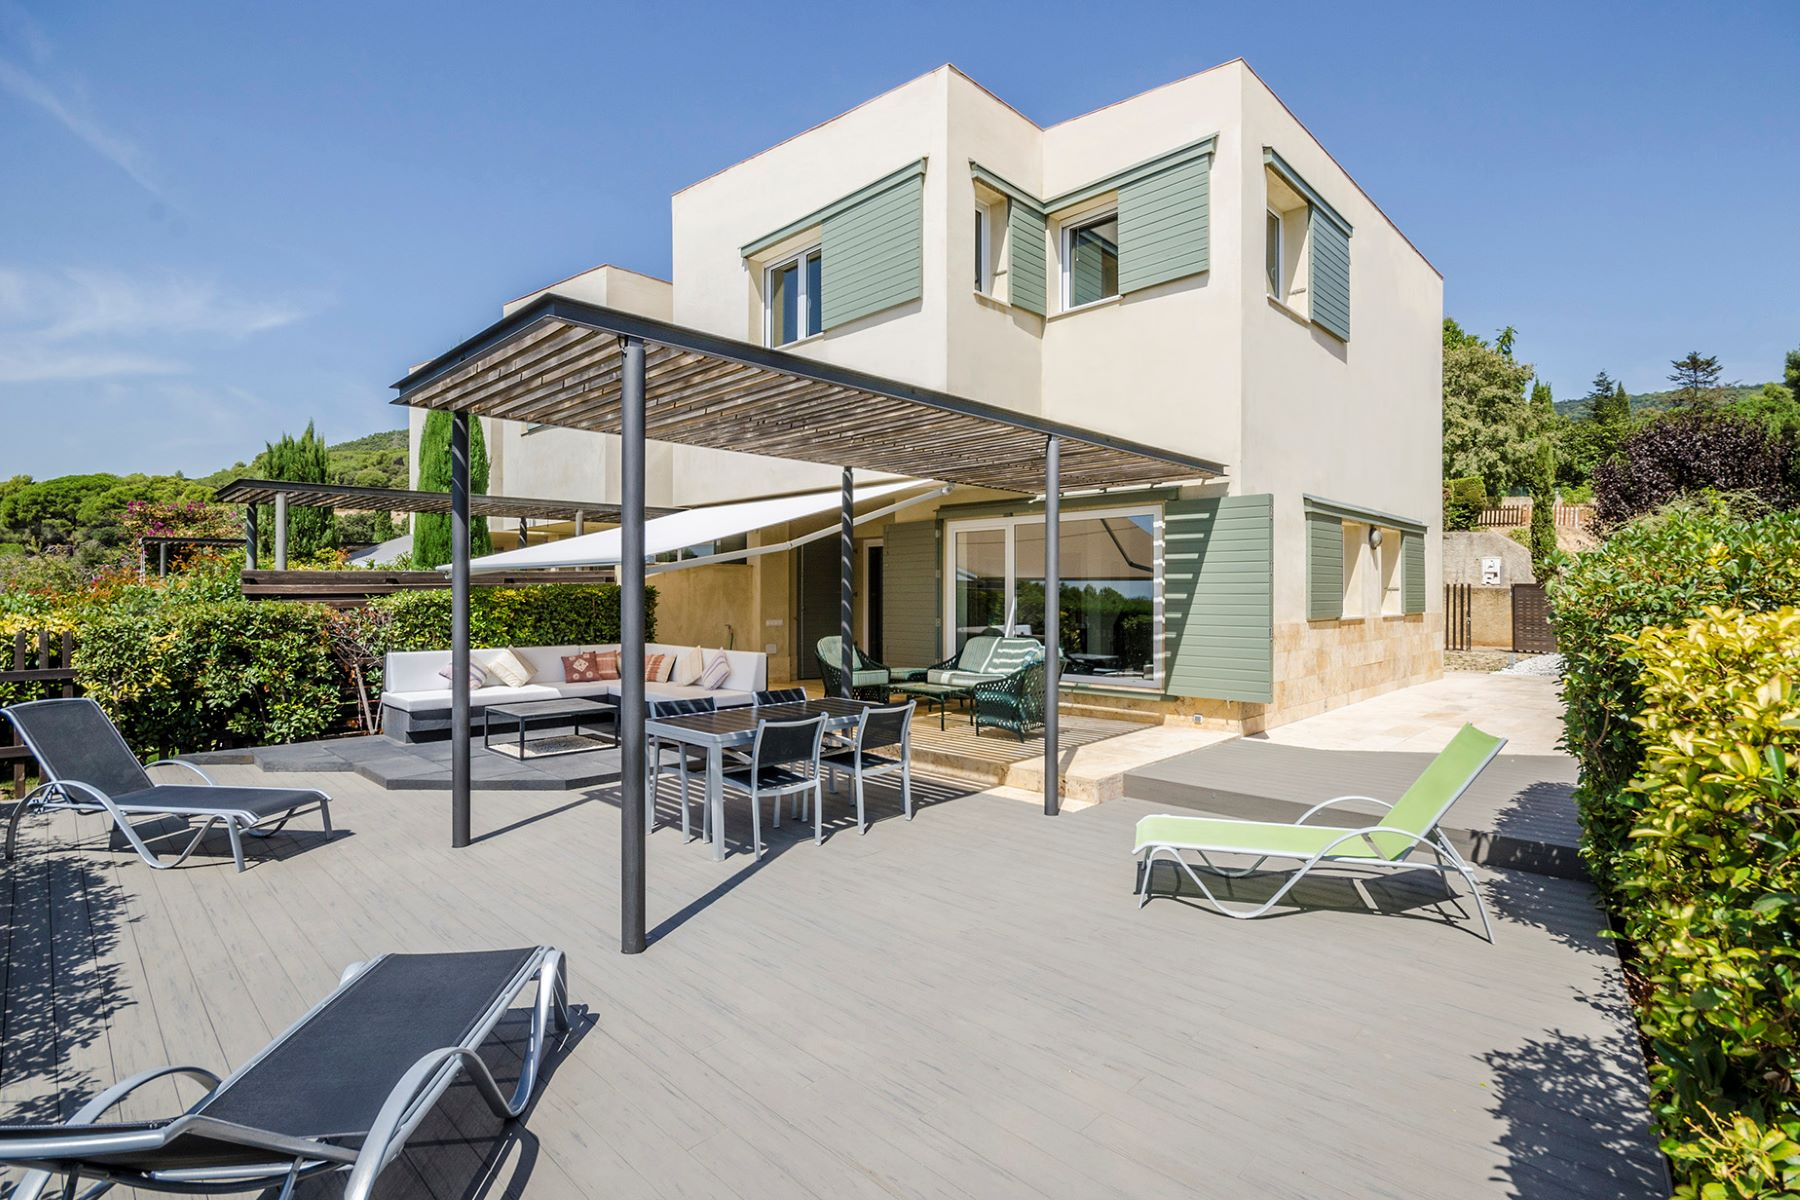 Single Family Home for Sale at Beautiful family house in an unbeatable surroundings Other Cities Barcelona Surroundings, Barcelona, 08192 Spain